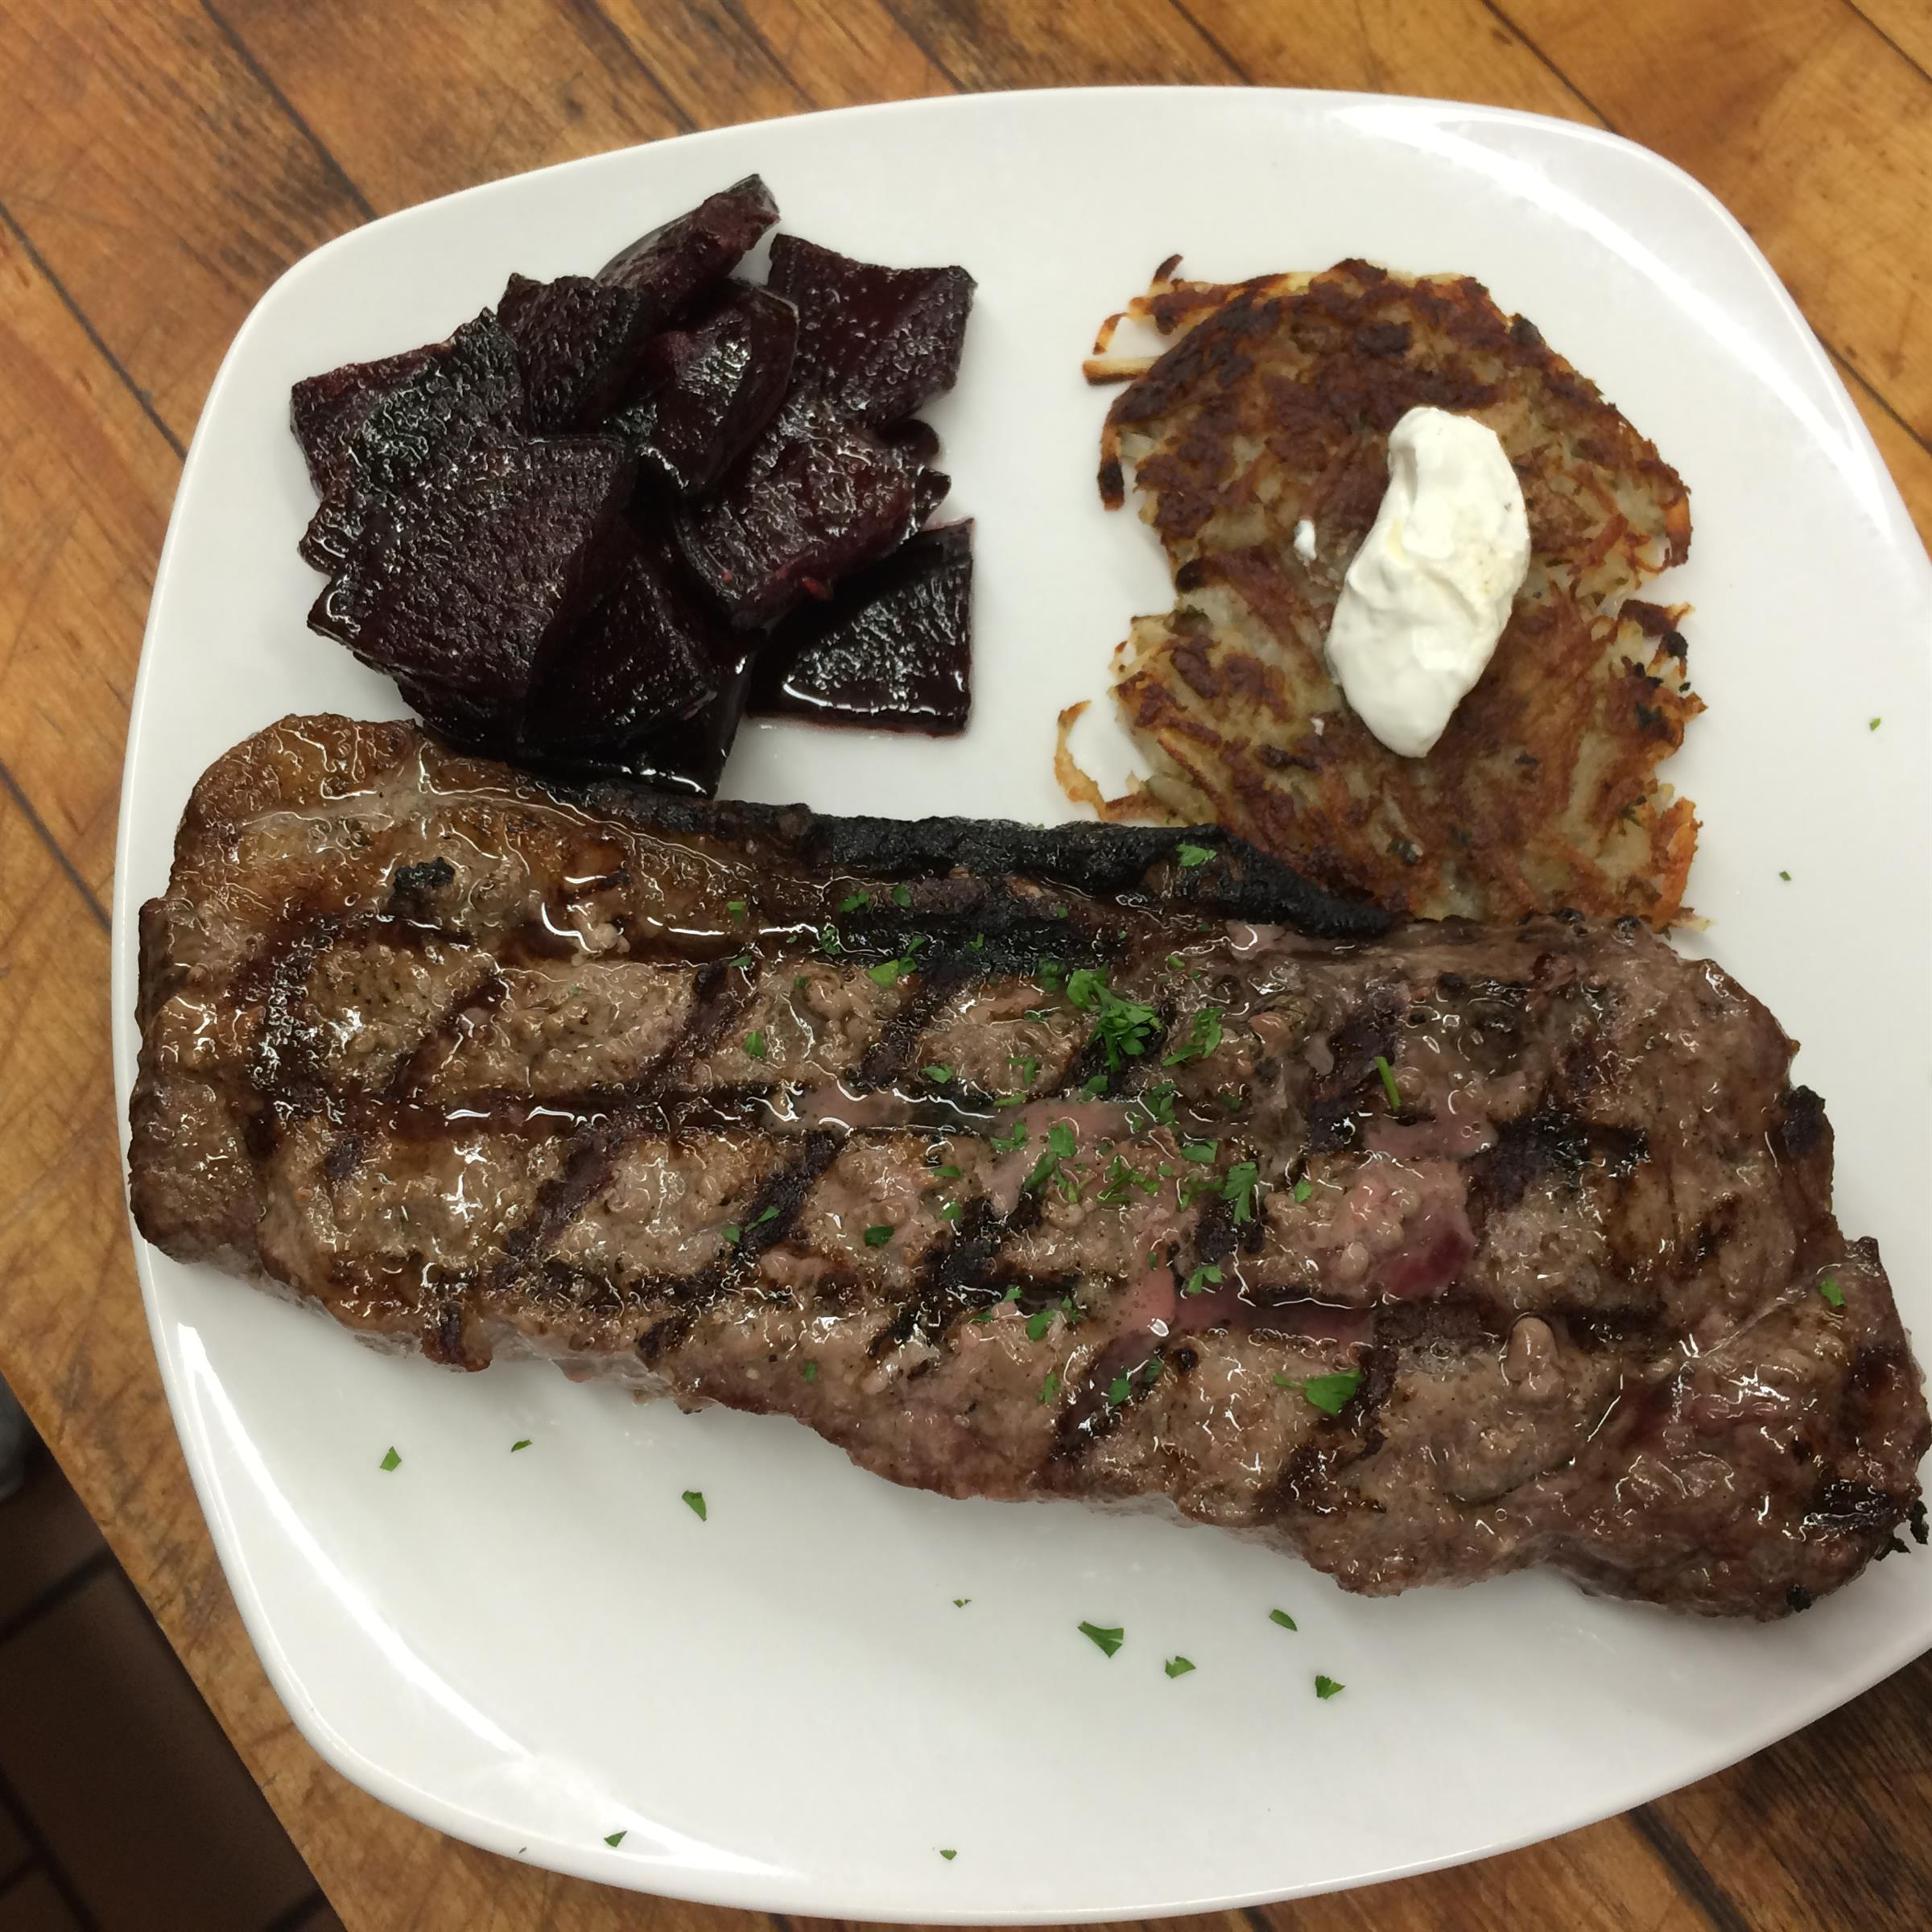 grilled steak with hashbrowns and beets